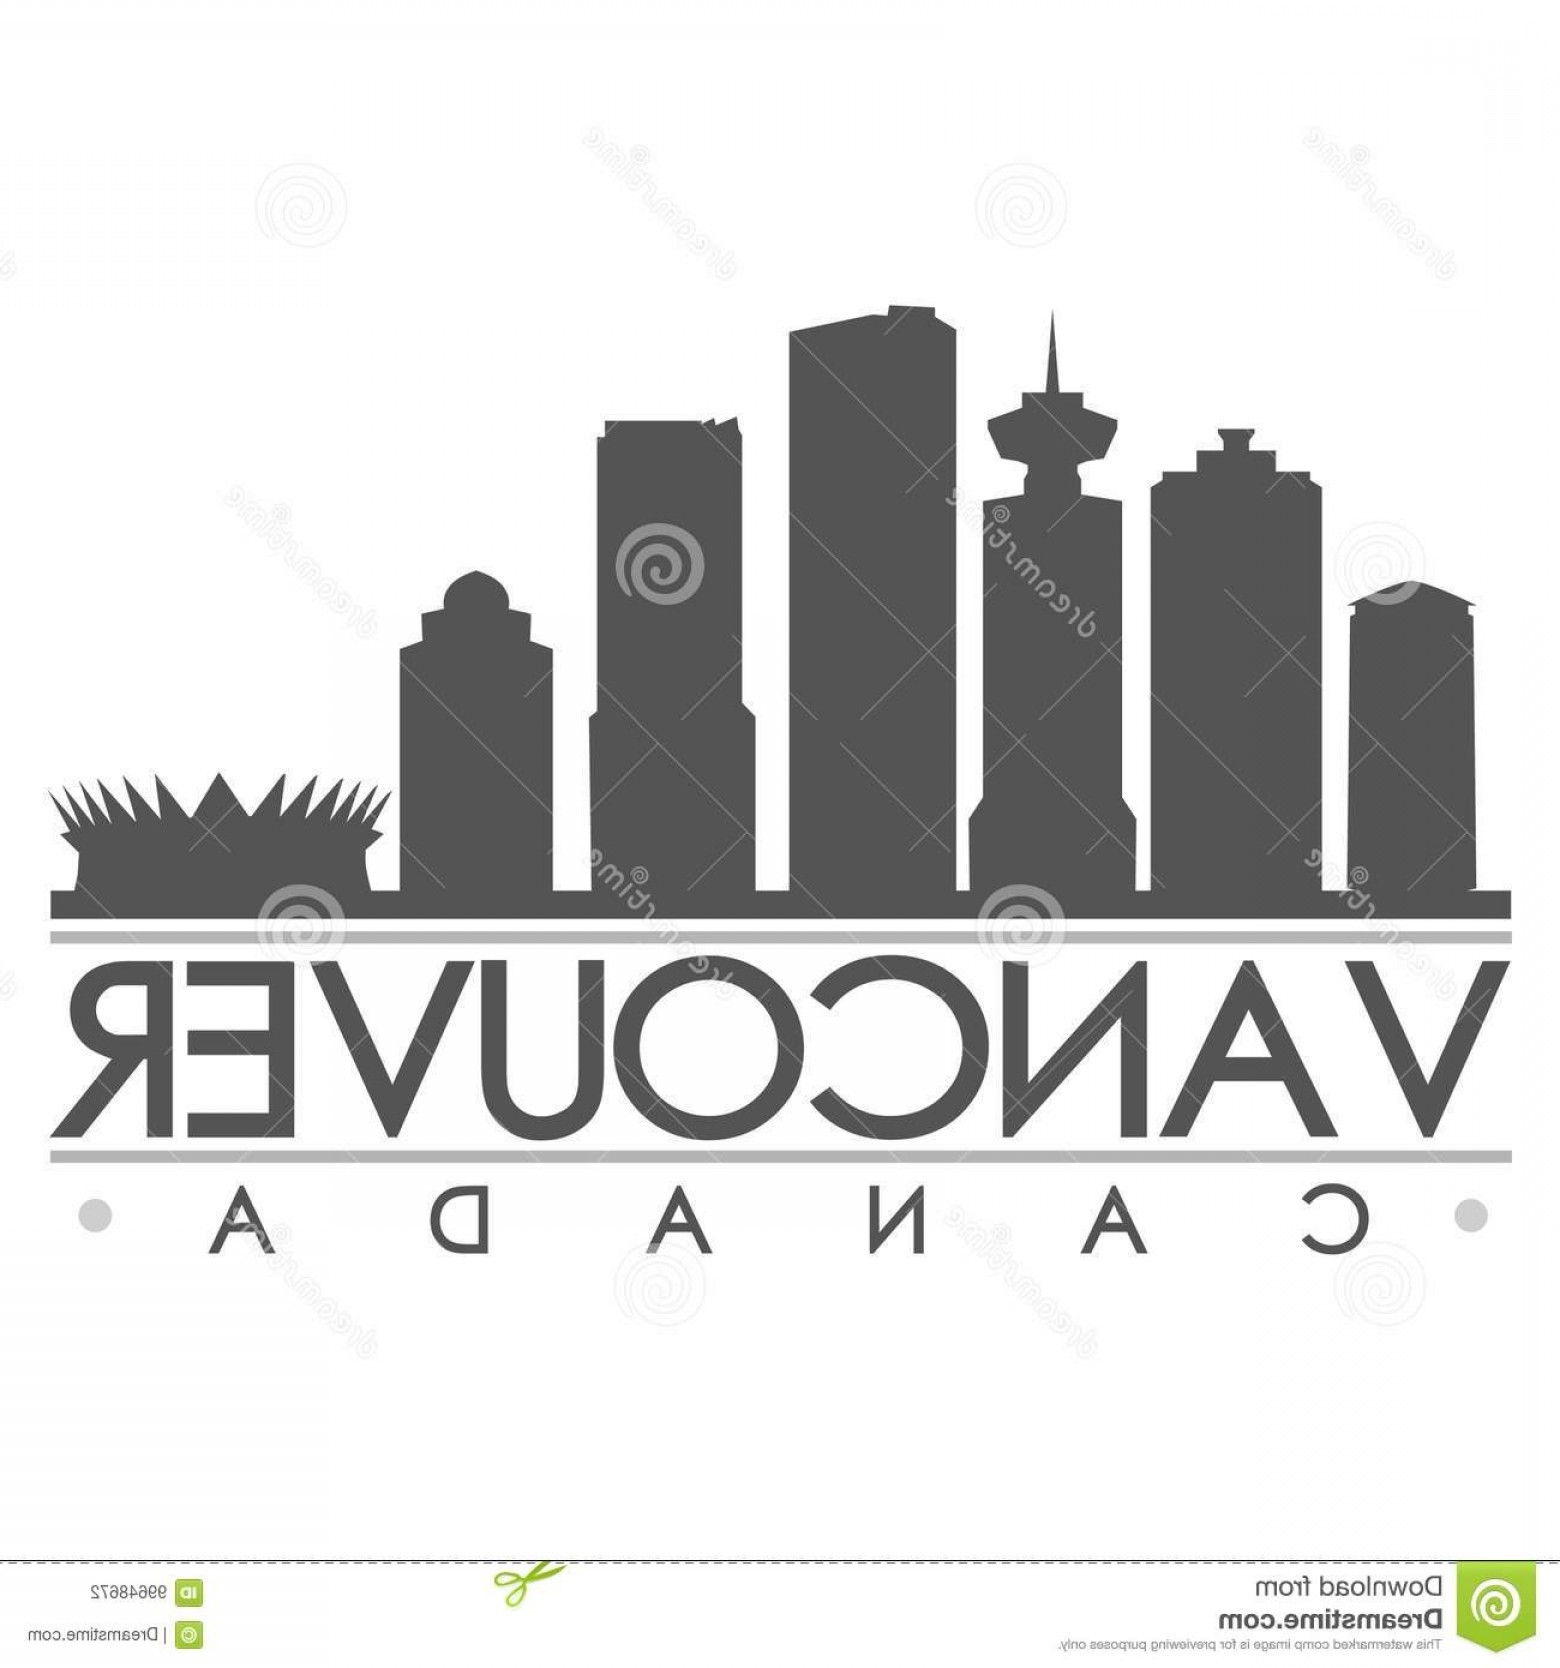 Vancouver Skyline Vector: Stock Illustration Vancouver Skyline Silhouette Design City Vector Art Icon Vancouver Emblematic Buildings Image